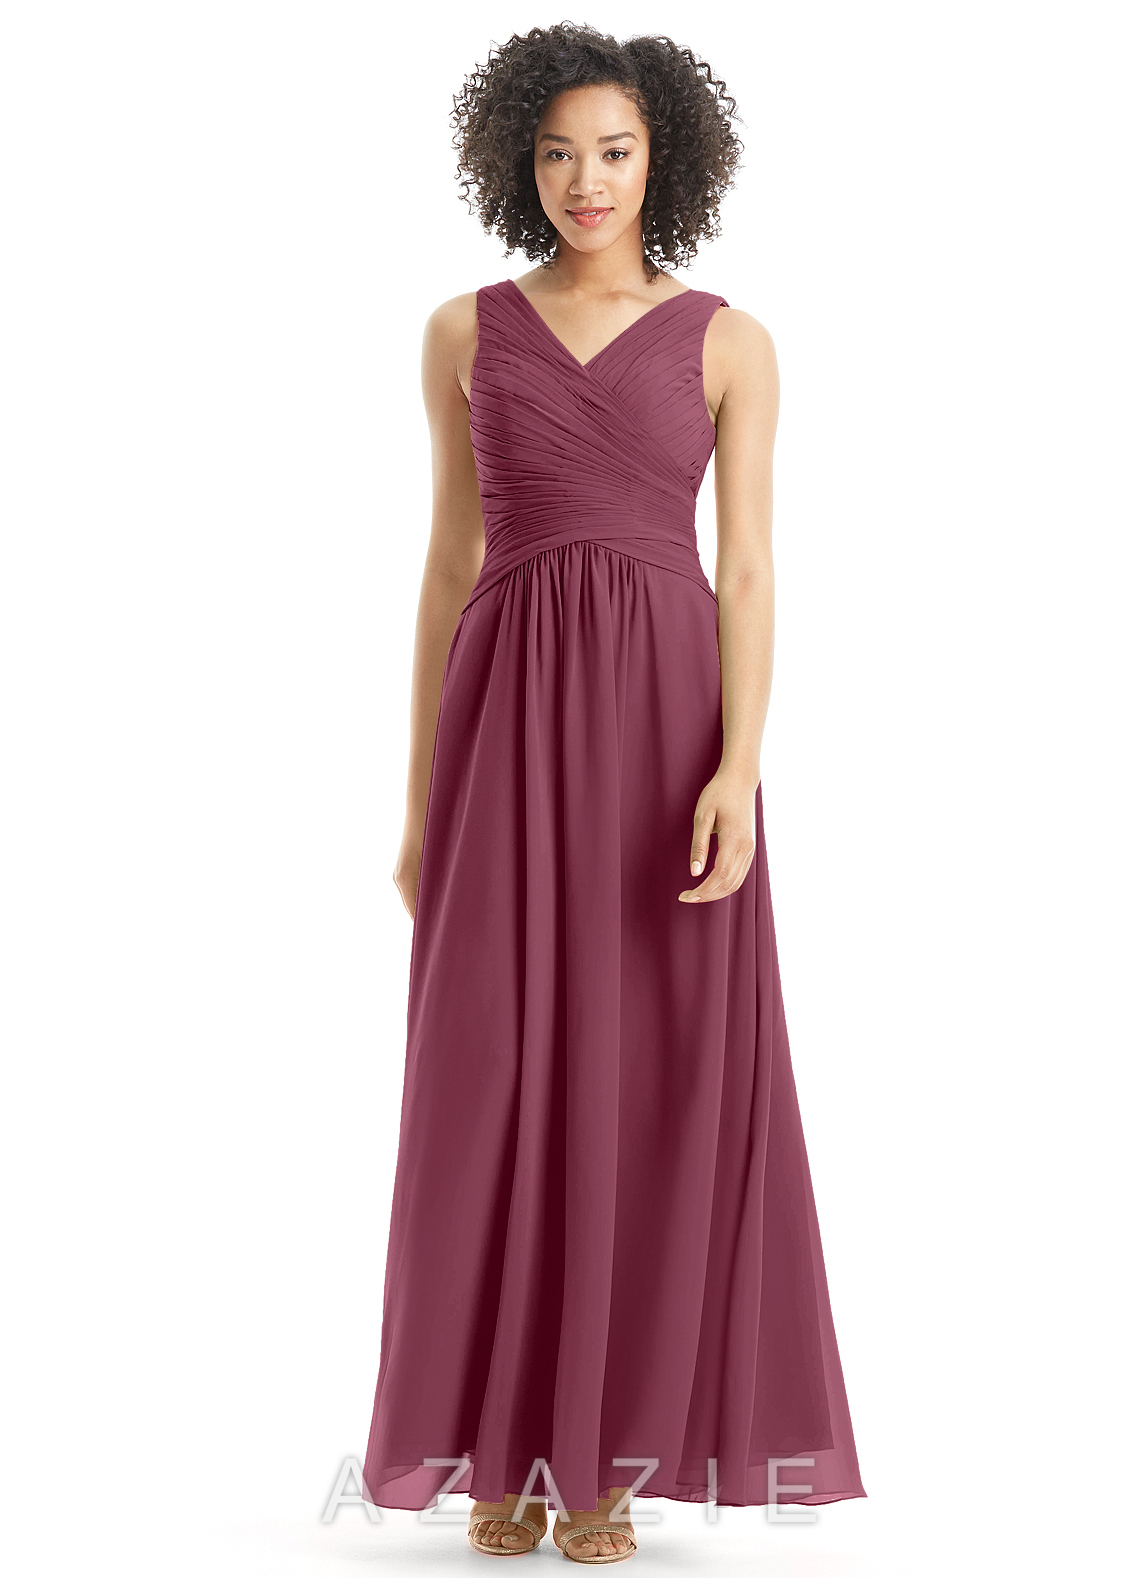 c718c498e04e Azazie Amelia Bridesmaid Dress | Azazie